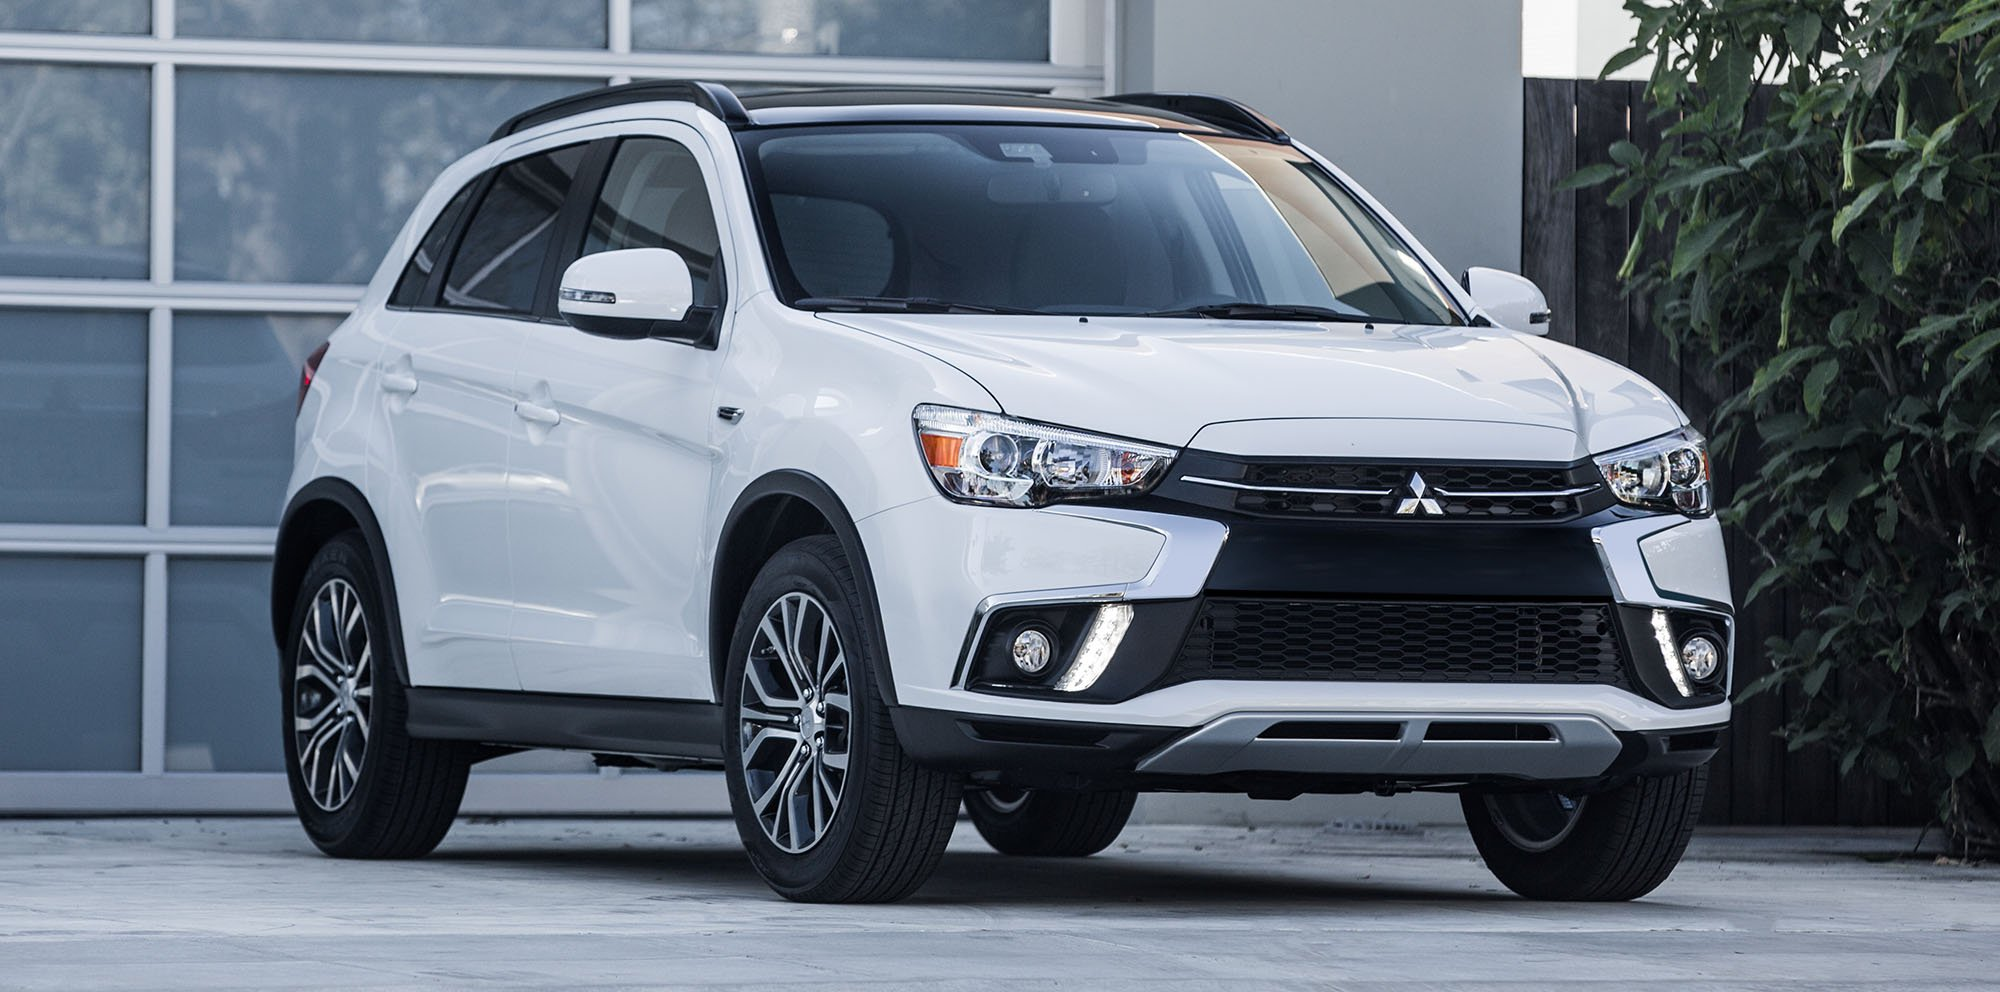 2018 Mitsubishi Asx Update Revealed In The Usa Photos